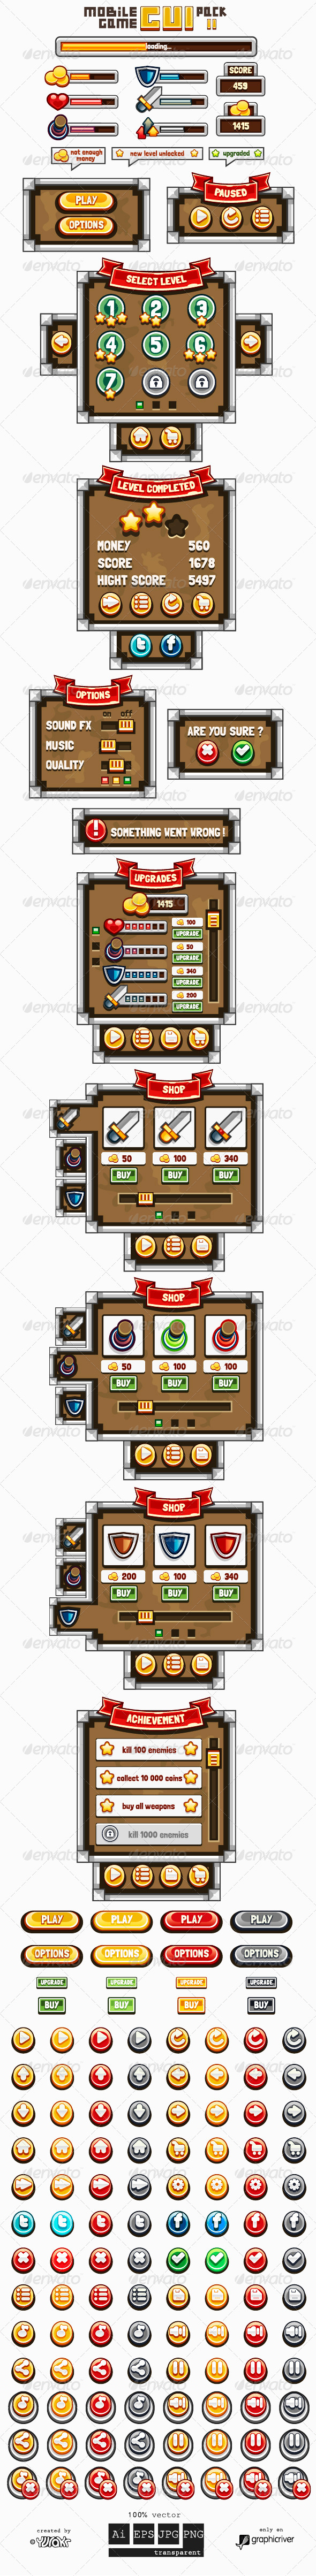 Mobile Game GUI Pack 2 - User Interfaces Game Assets